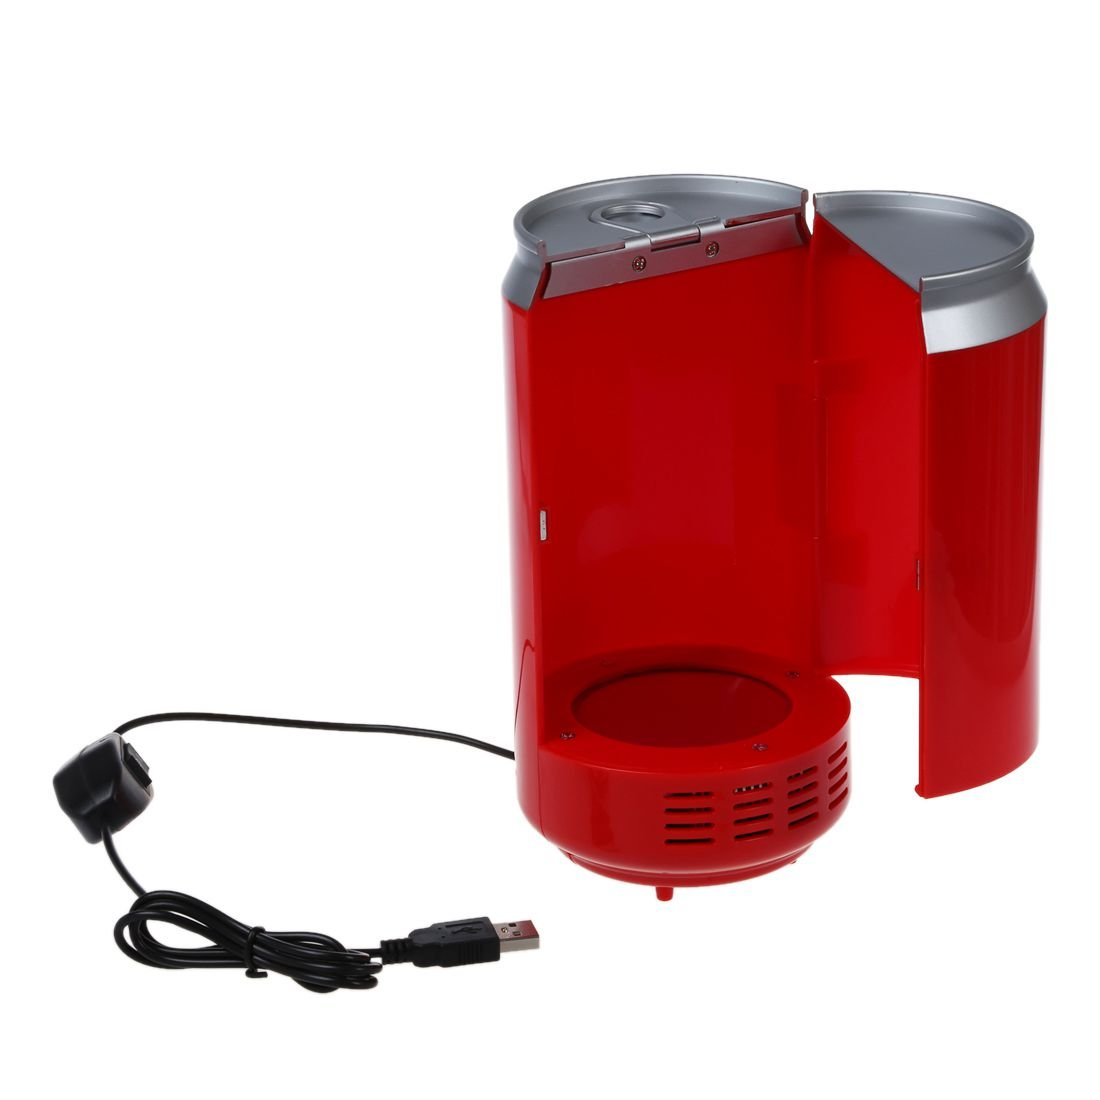 Red Vinmax Mini USB Fridge Portable Beer Beverage Drink Cans Cooler /& Warmer Mini Refrigerator For Car Laptop PC Computer Office Home Travel Picnic Boat